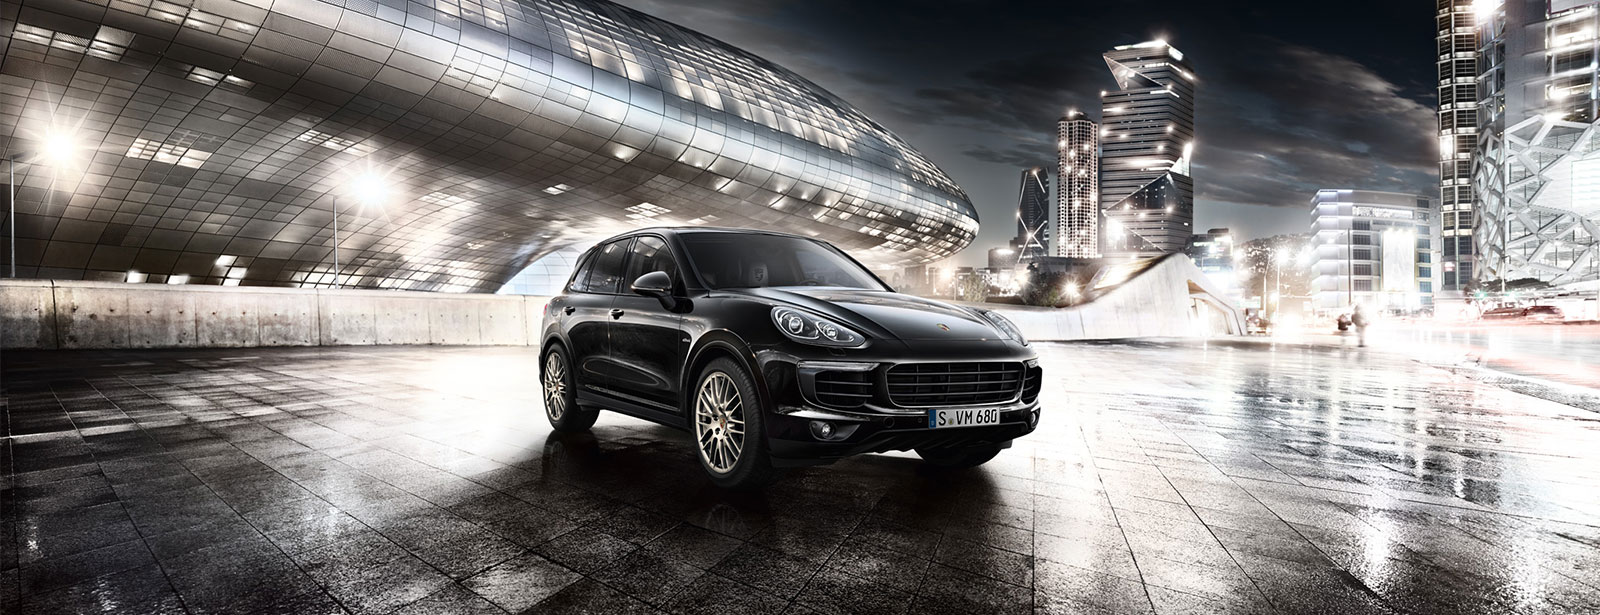 Leasingangebot | Cayenne Diesel Platinum Edition